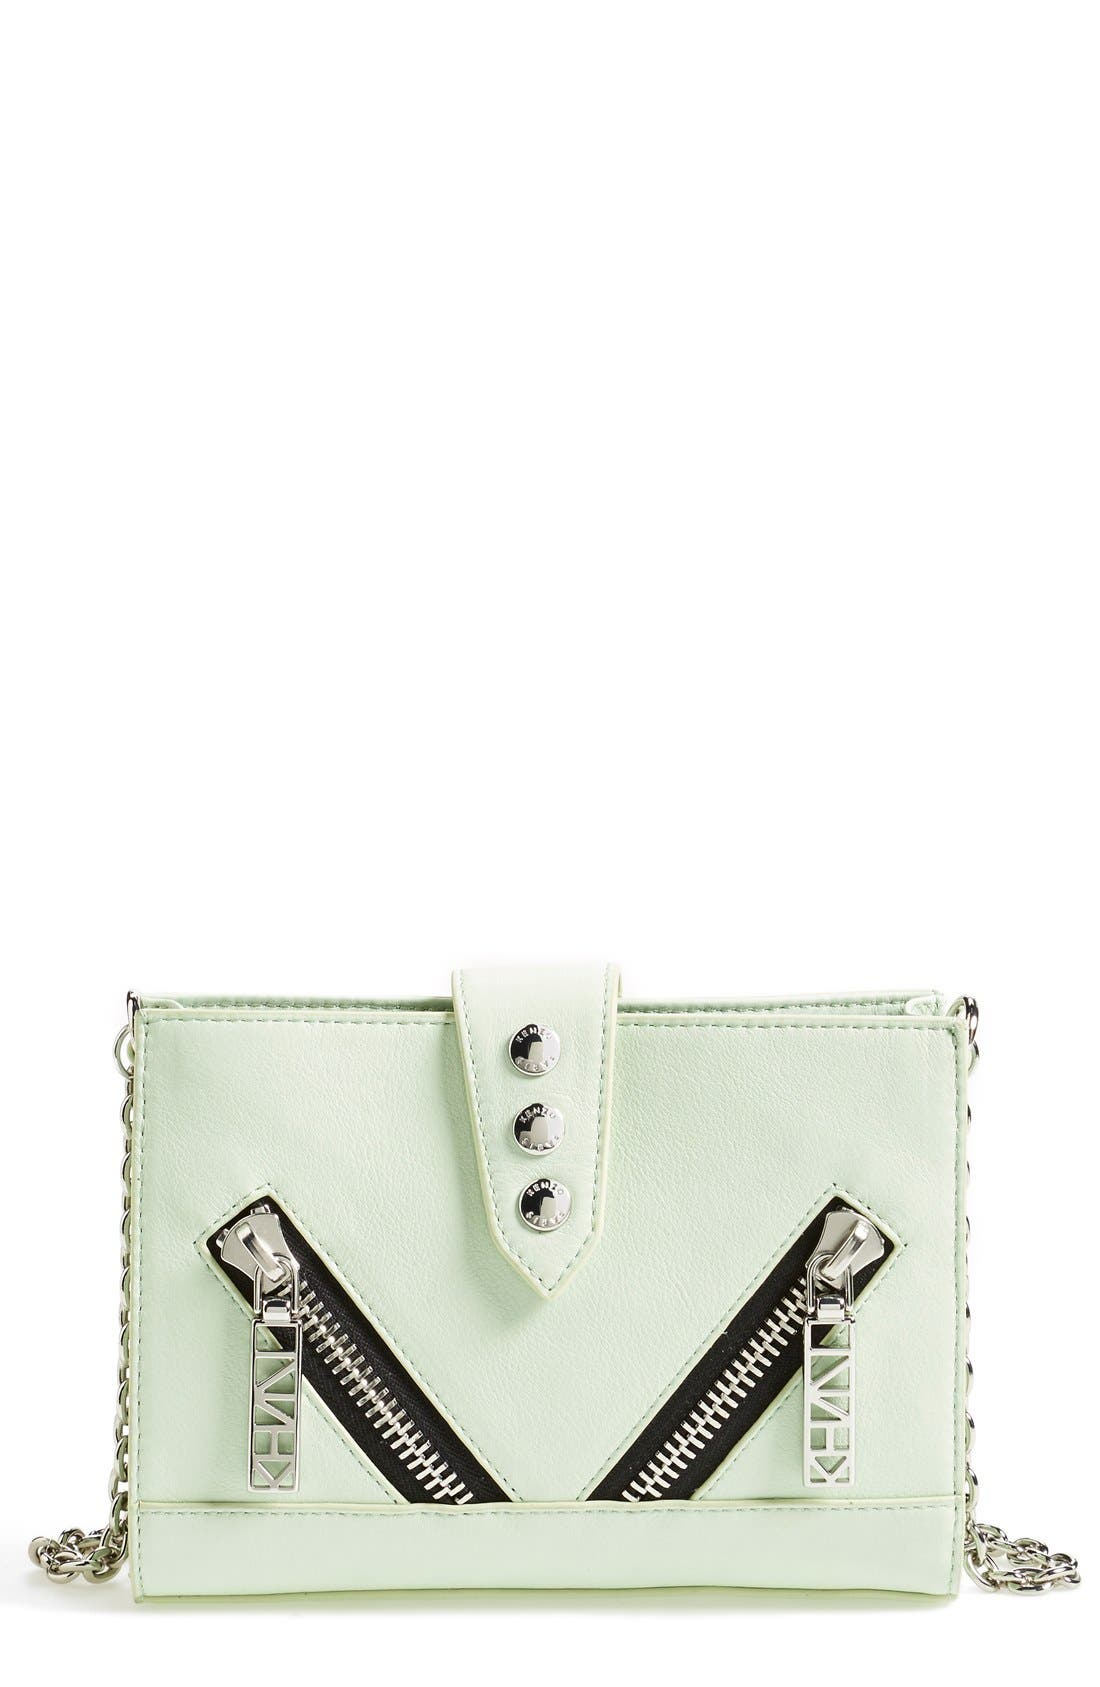 Alternate Image 1 Selected - KENZO 'Kalifornia' Leather Wallet on a Chain